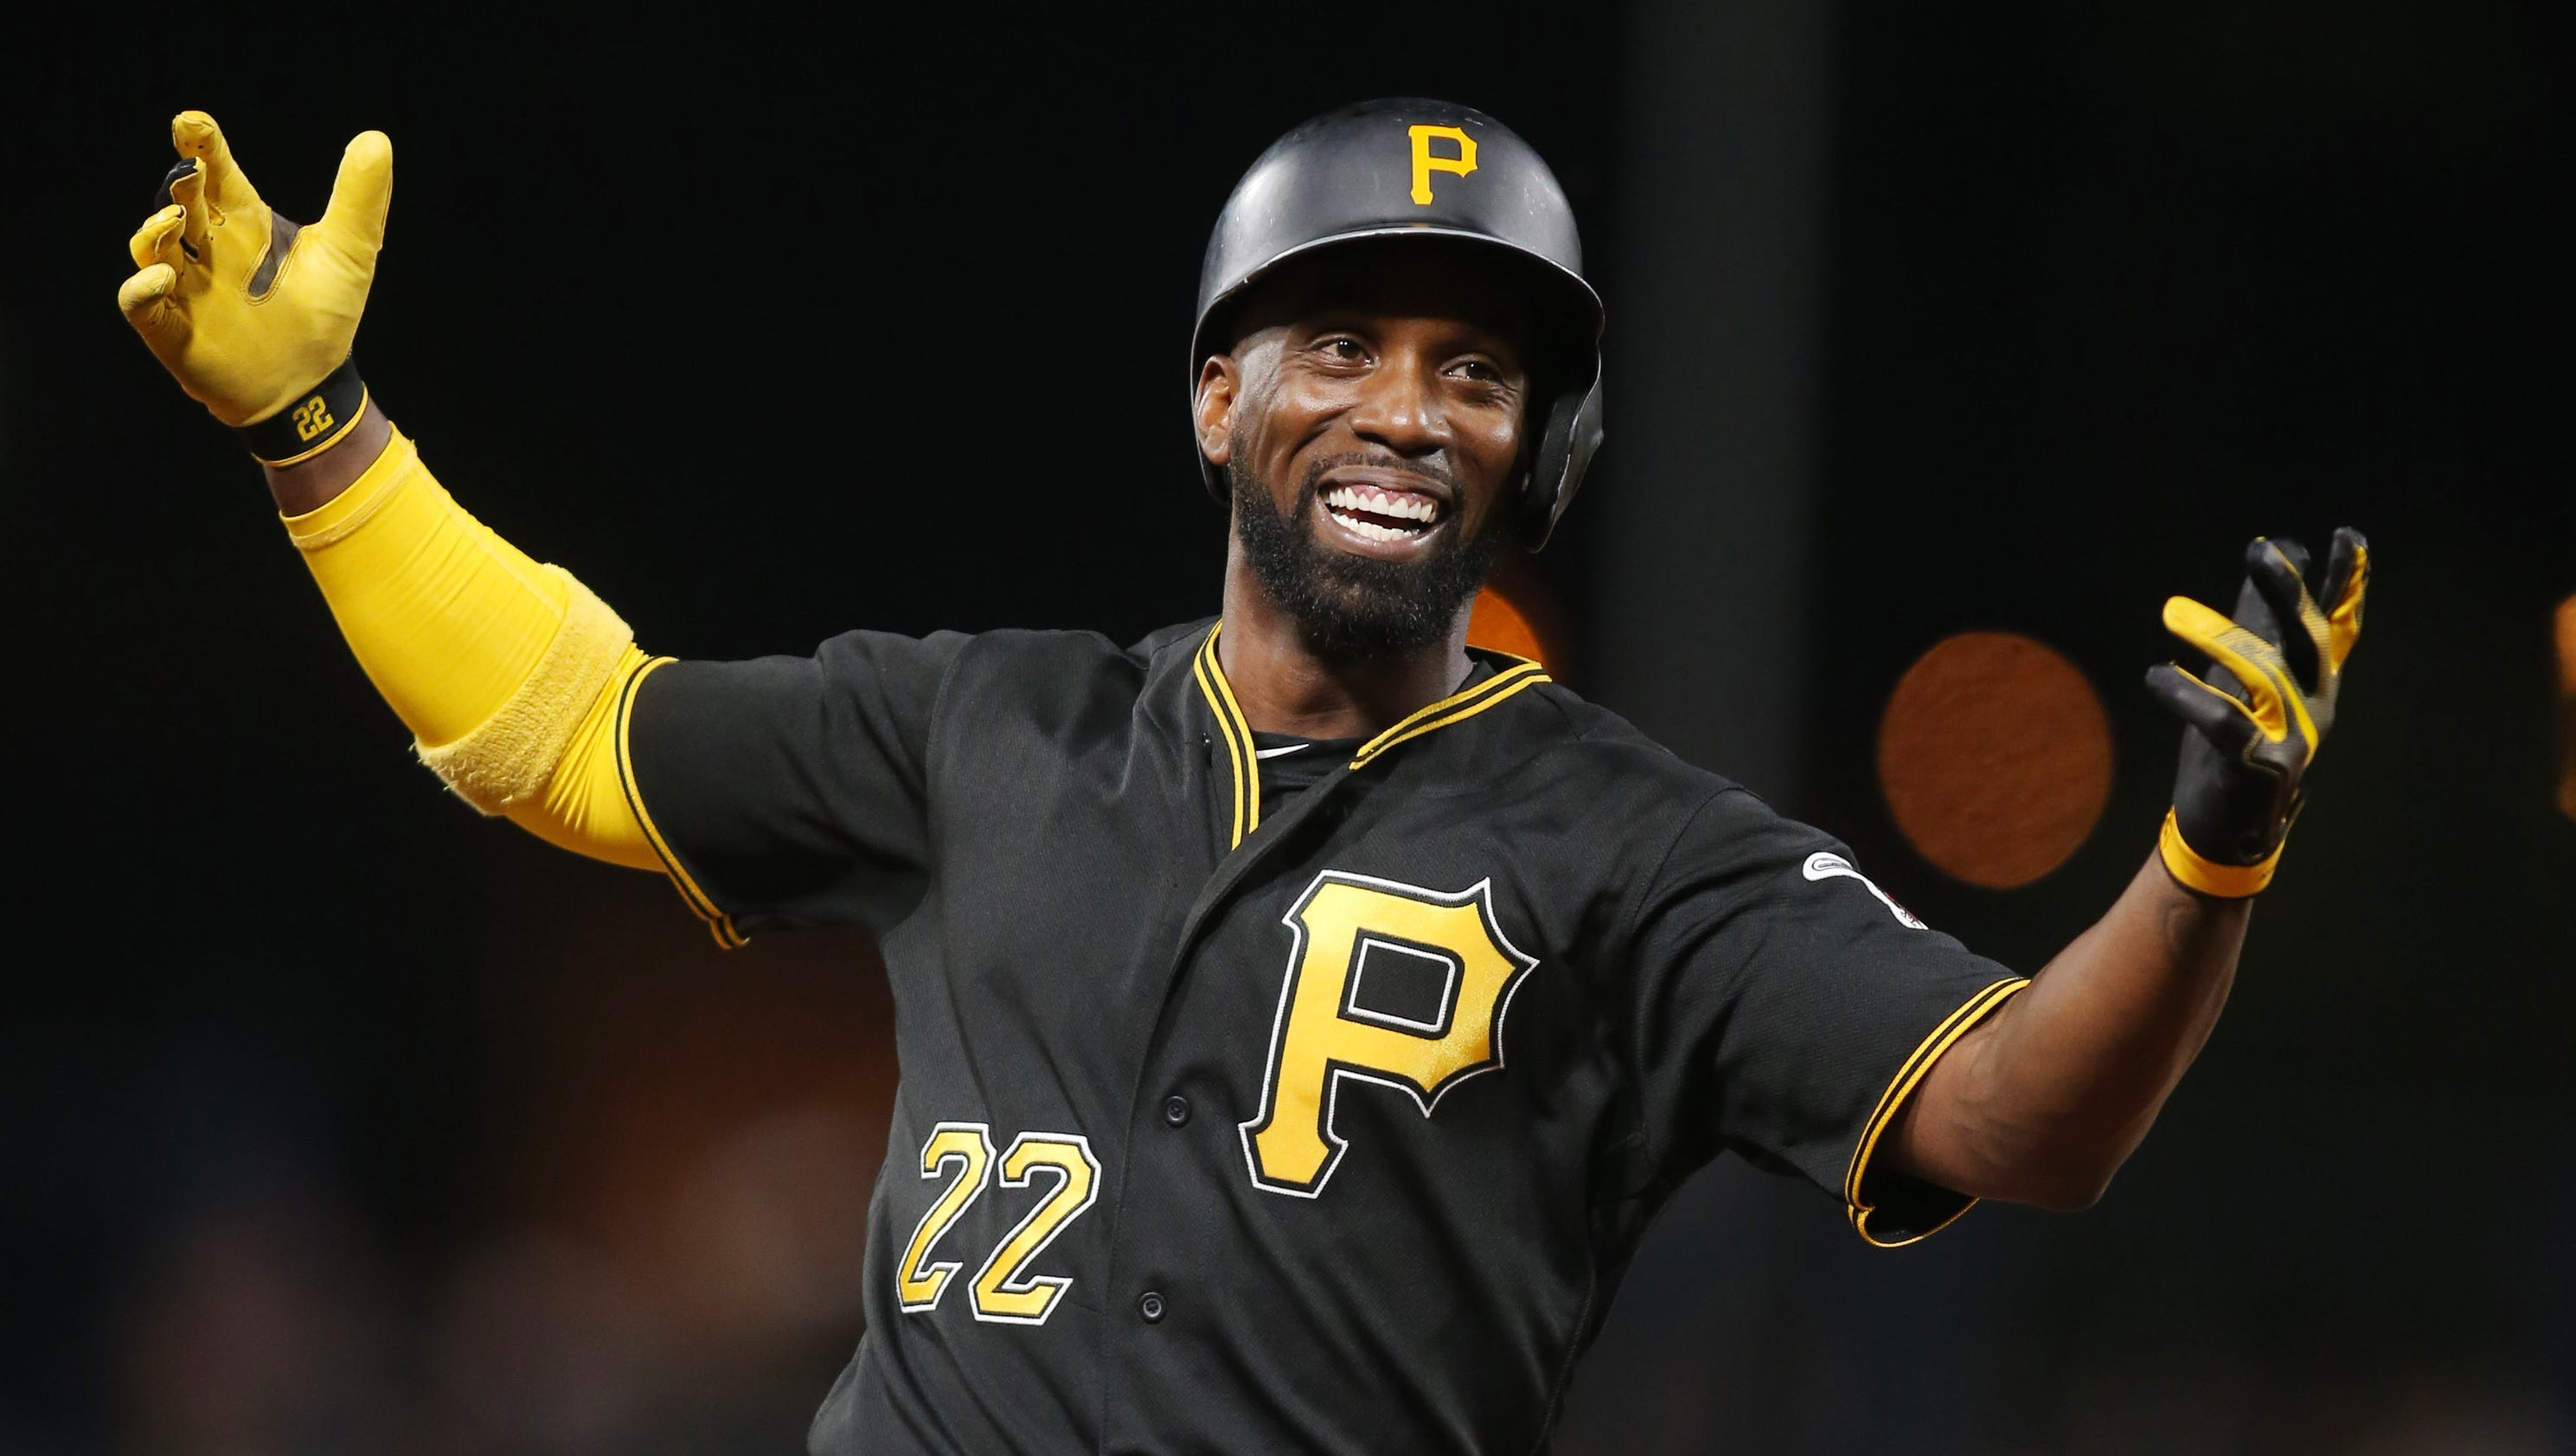 Pittsburgh Pirates: Giants Acquire Pirates Great Andrew McCutchen As Era Ends